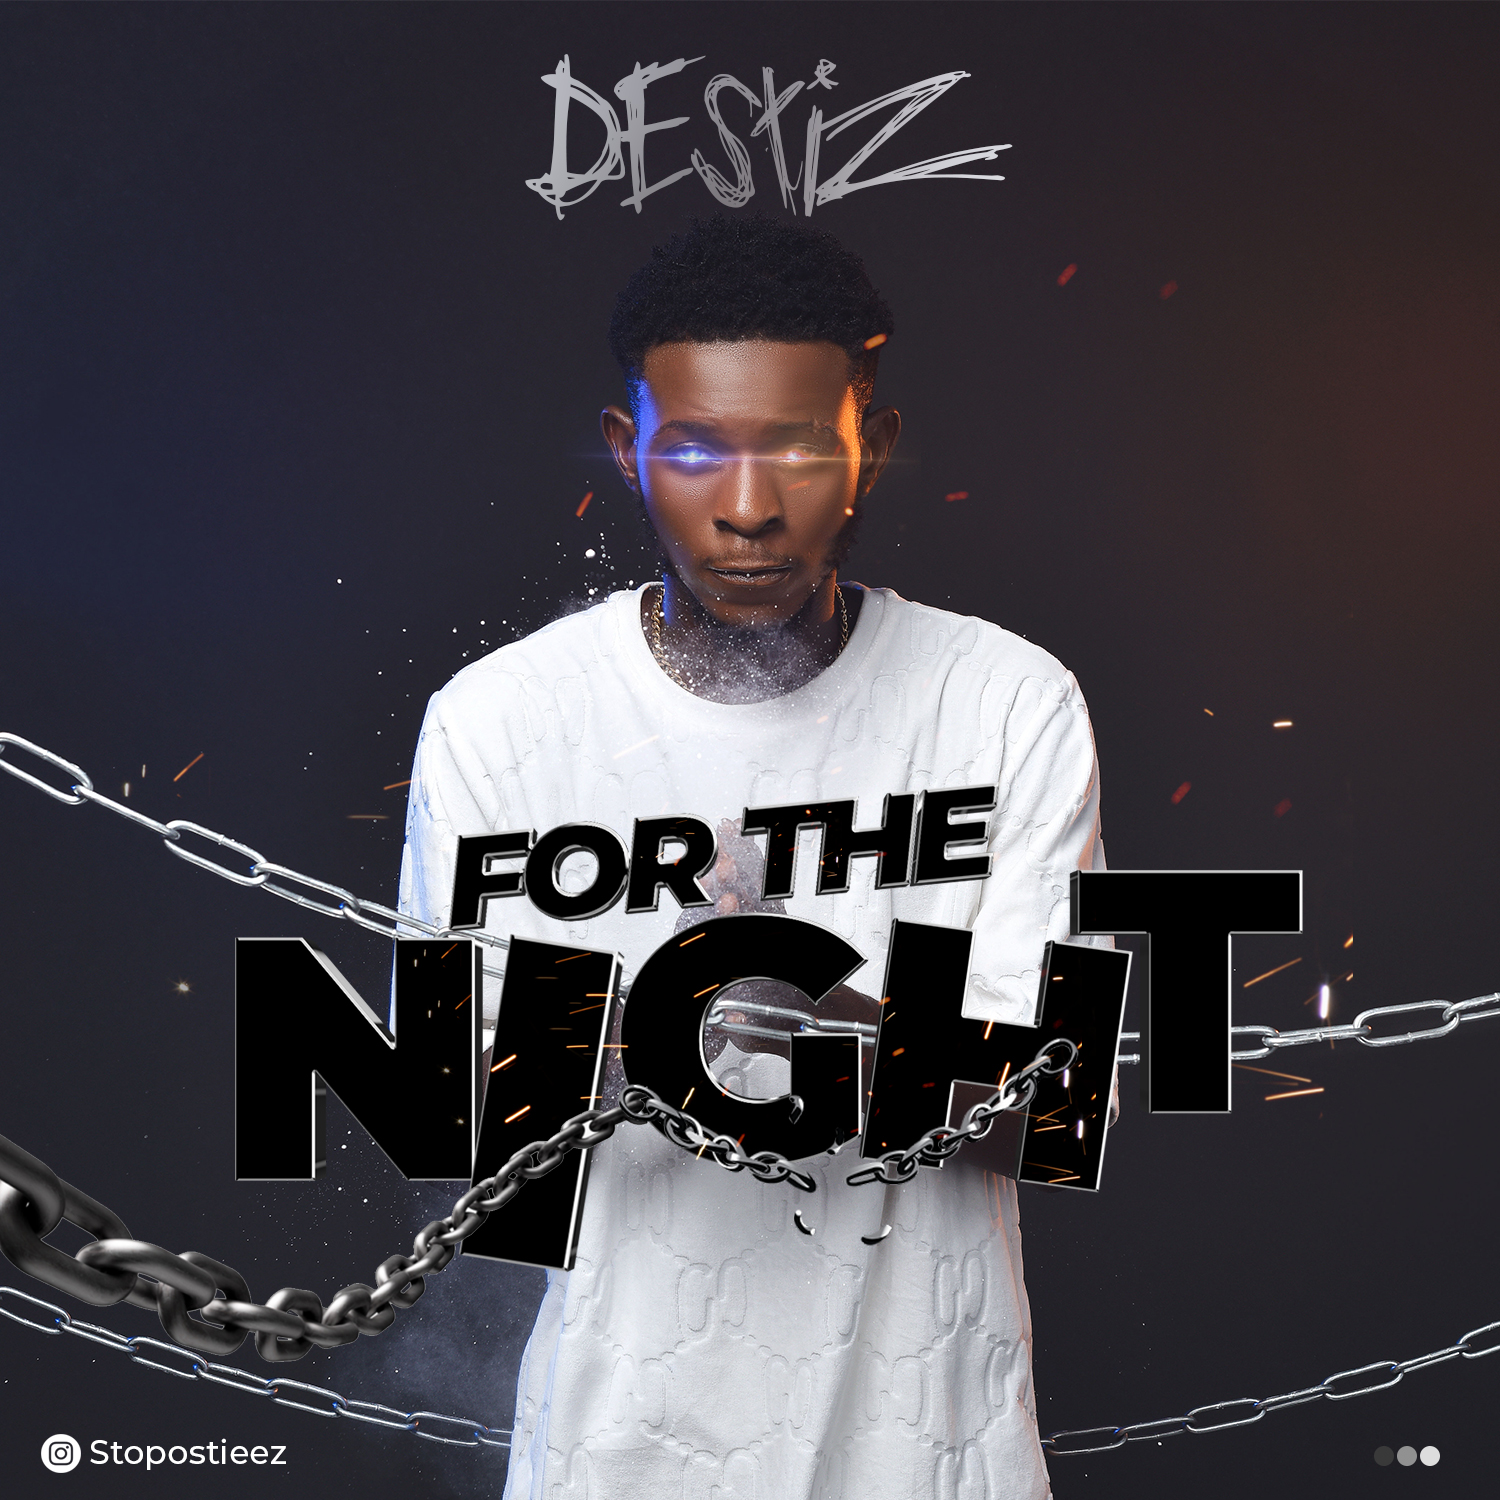 DESTIZ – Biography ( Real name, Net Worth, State of Origin, Music Journey so far , Inspiration and Aspirations